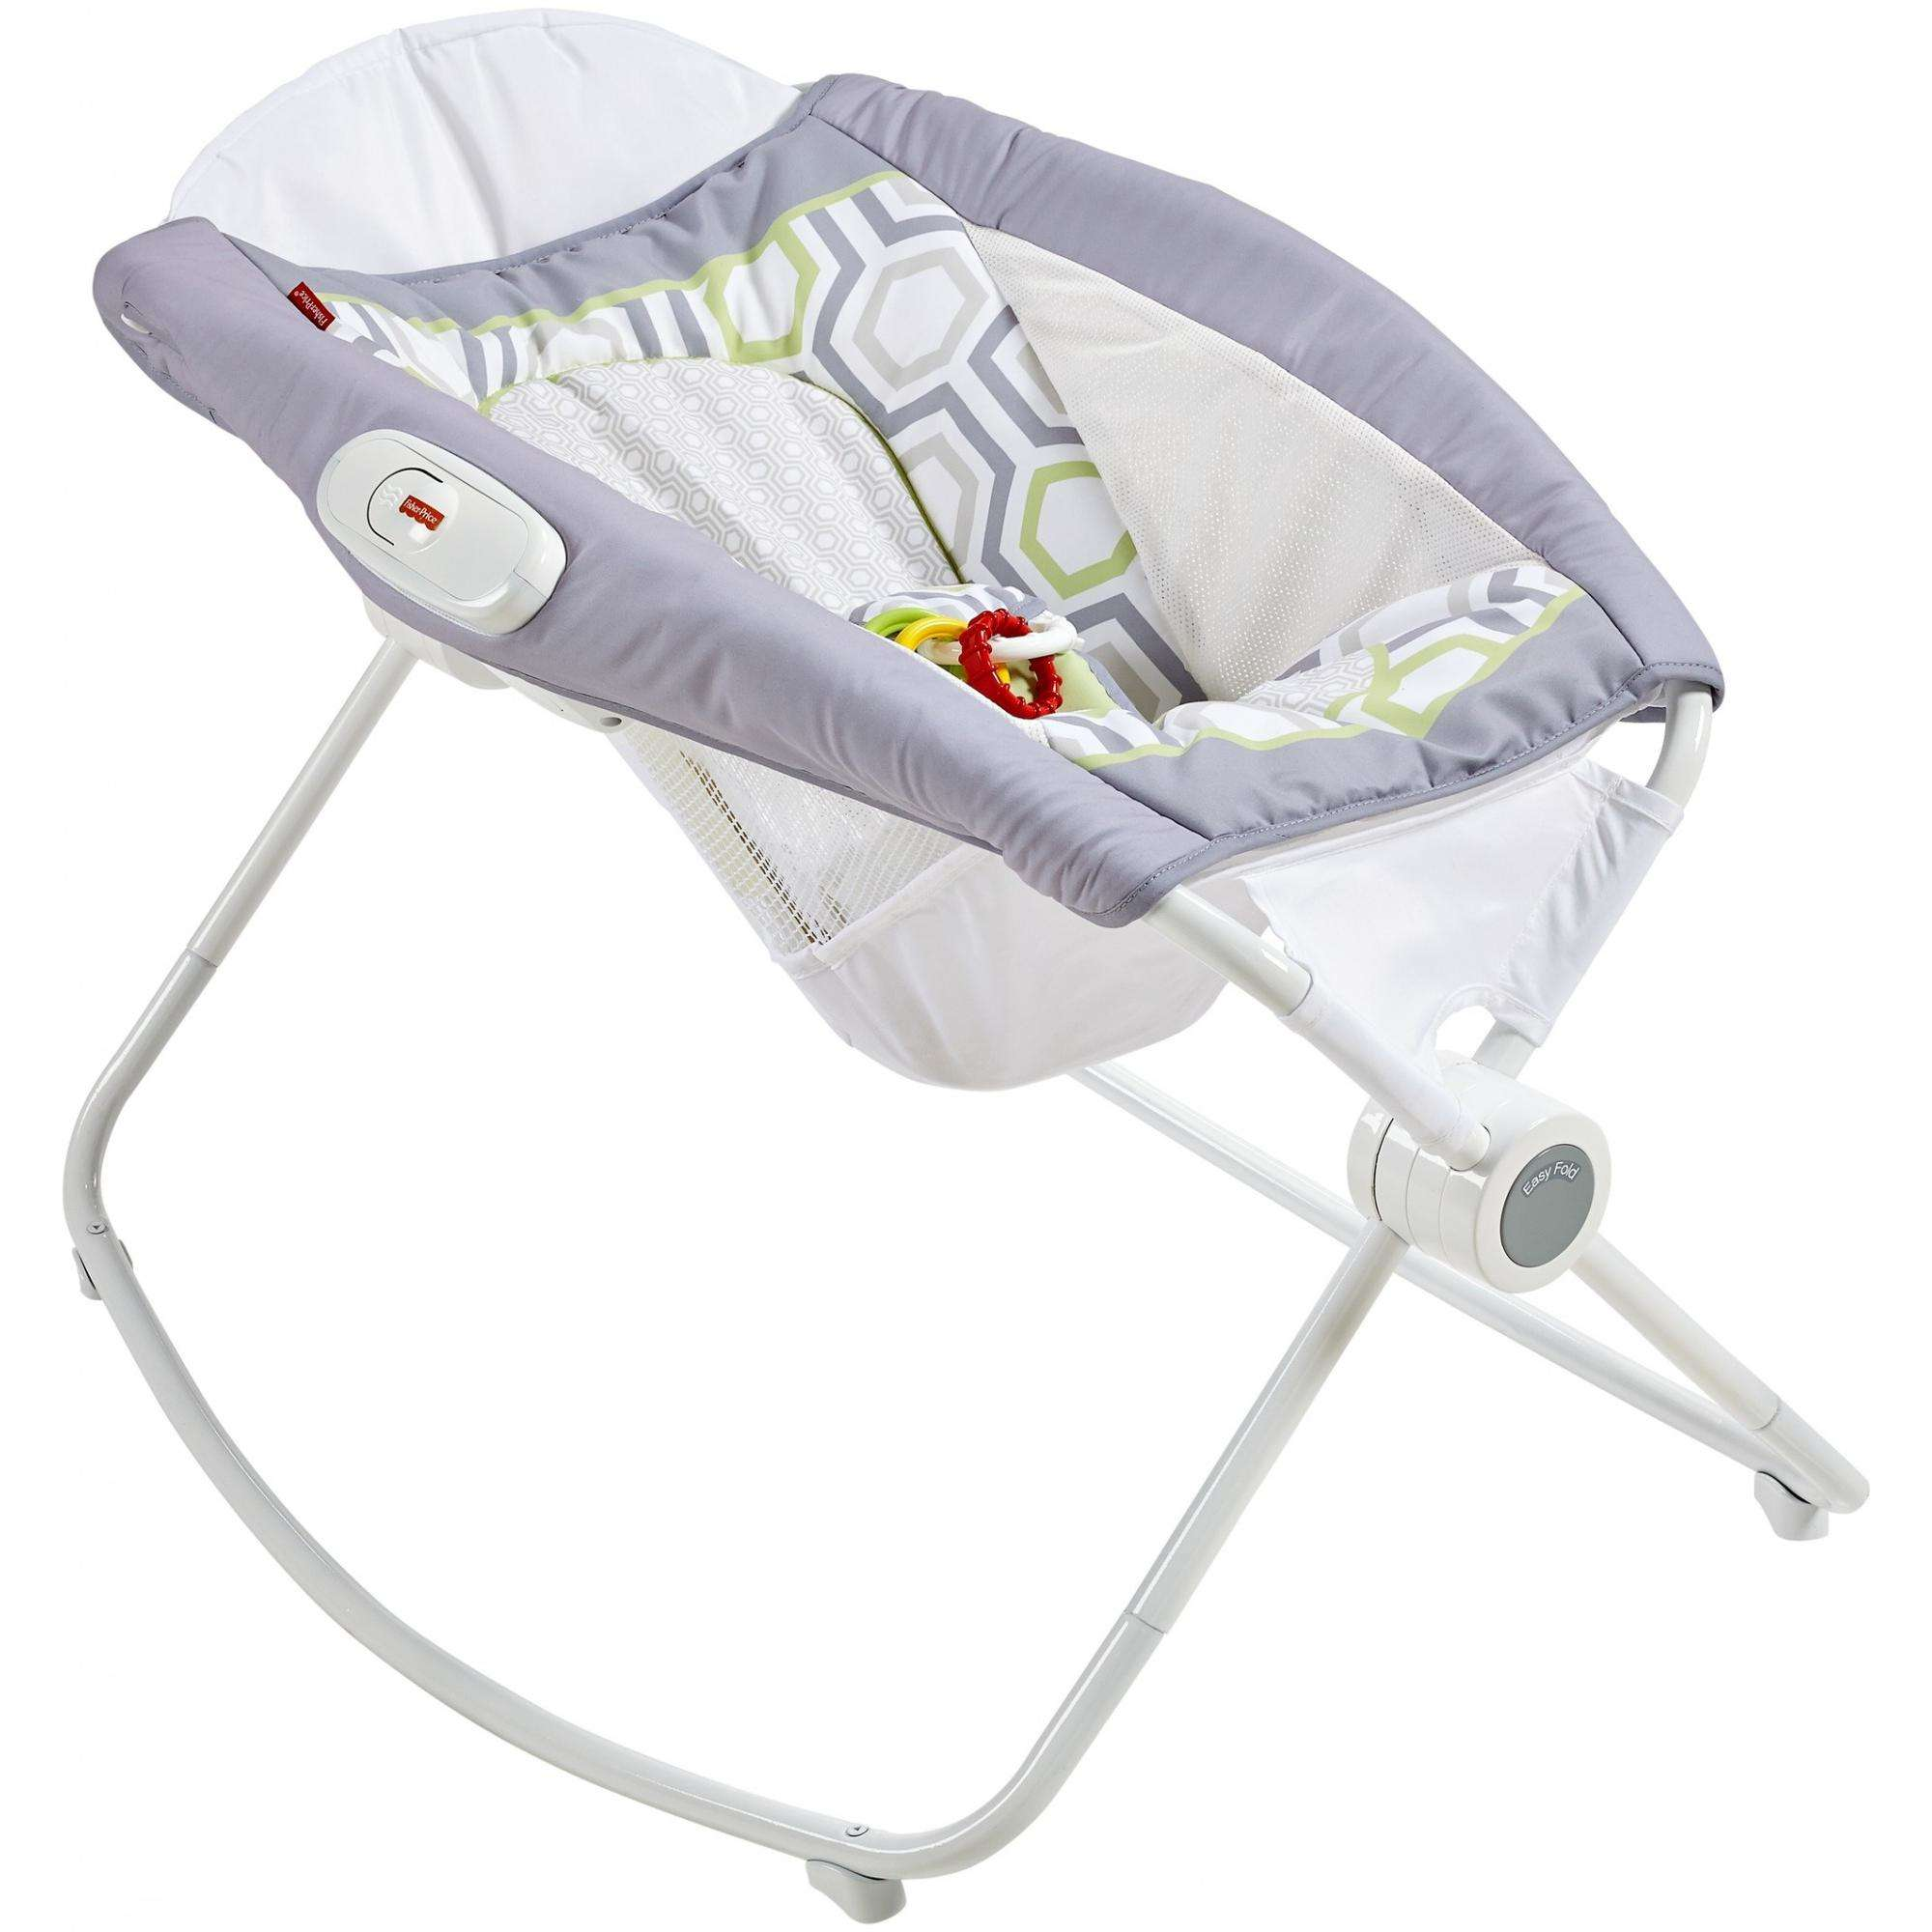 Fisher Price Rock 'n Play Sleeper Geo Meadow by Fisher-Price